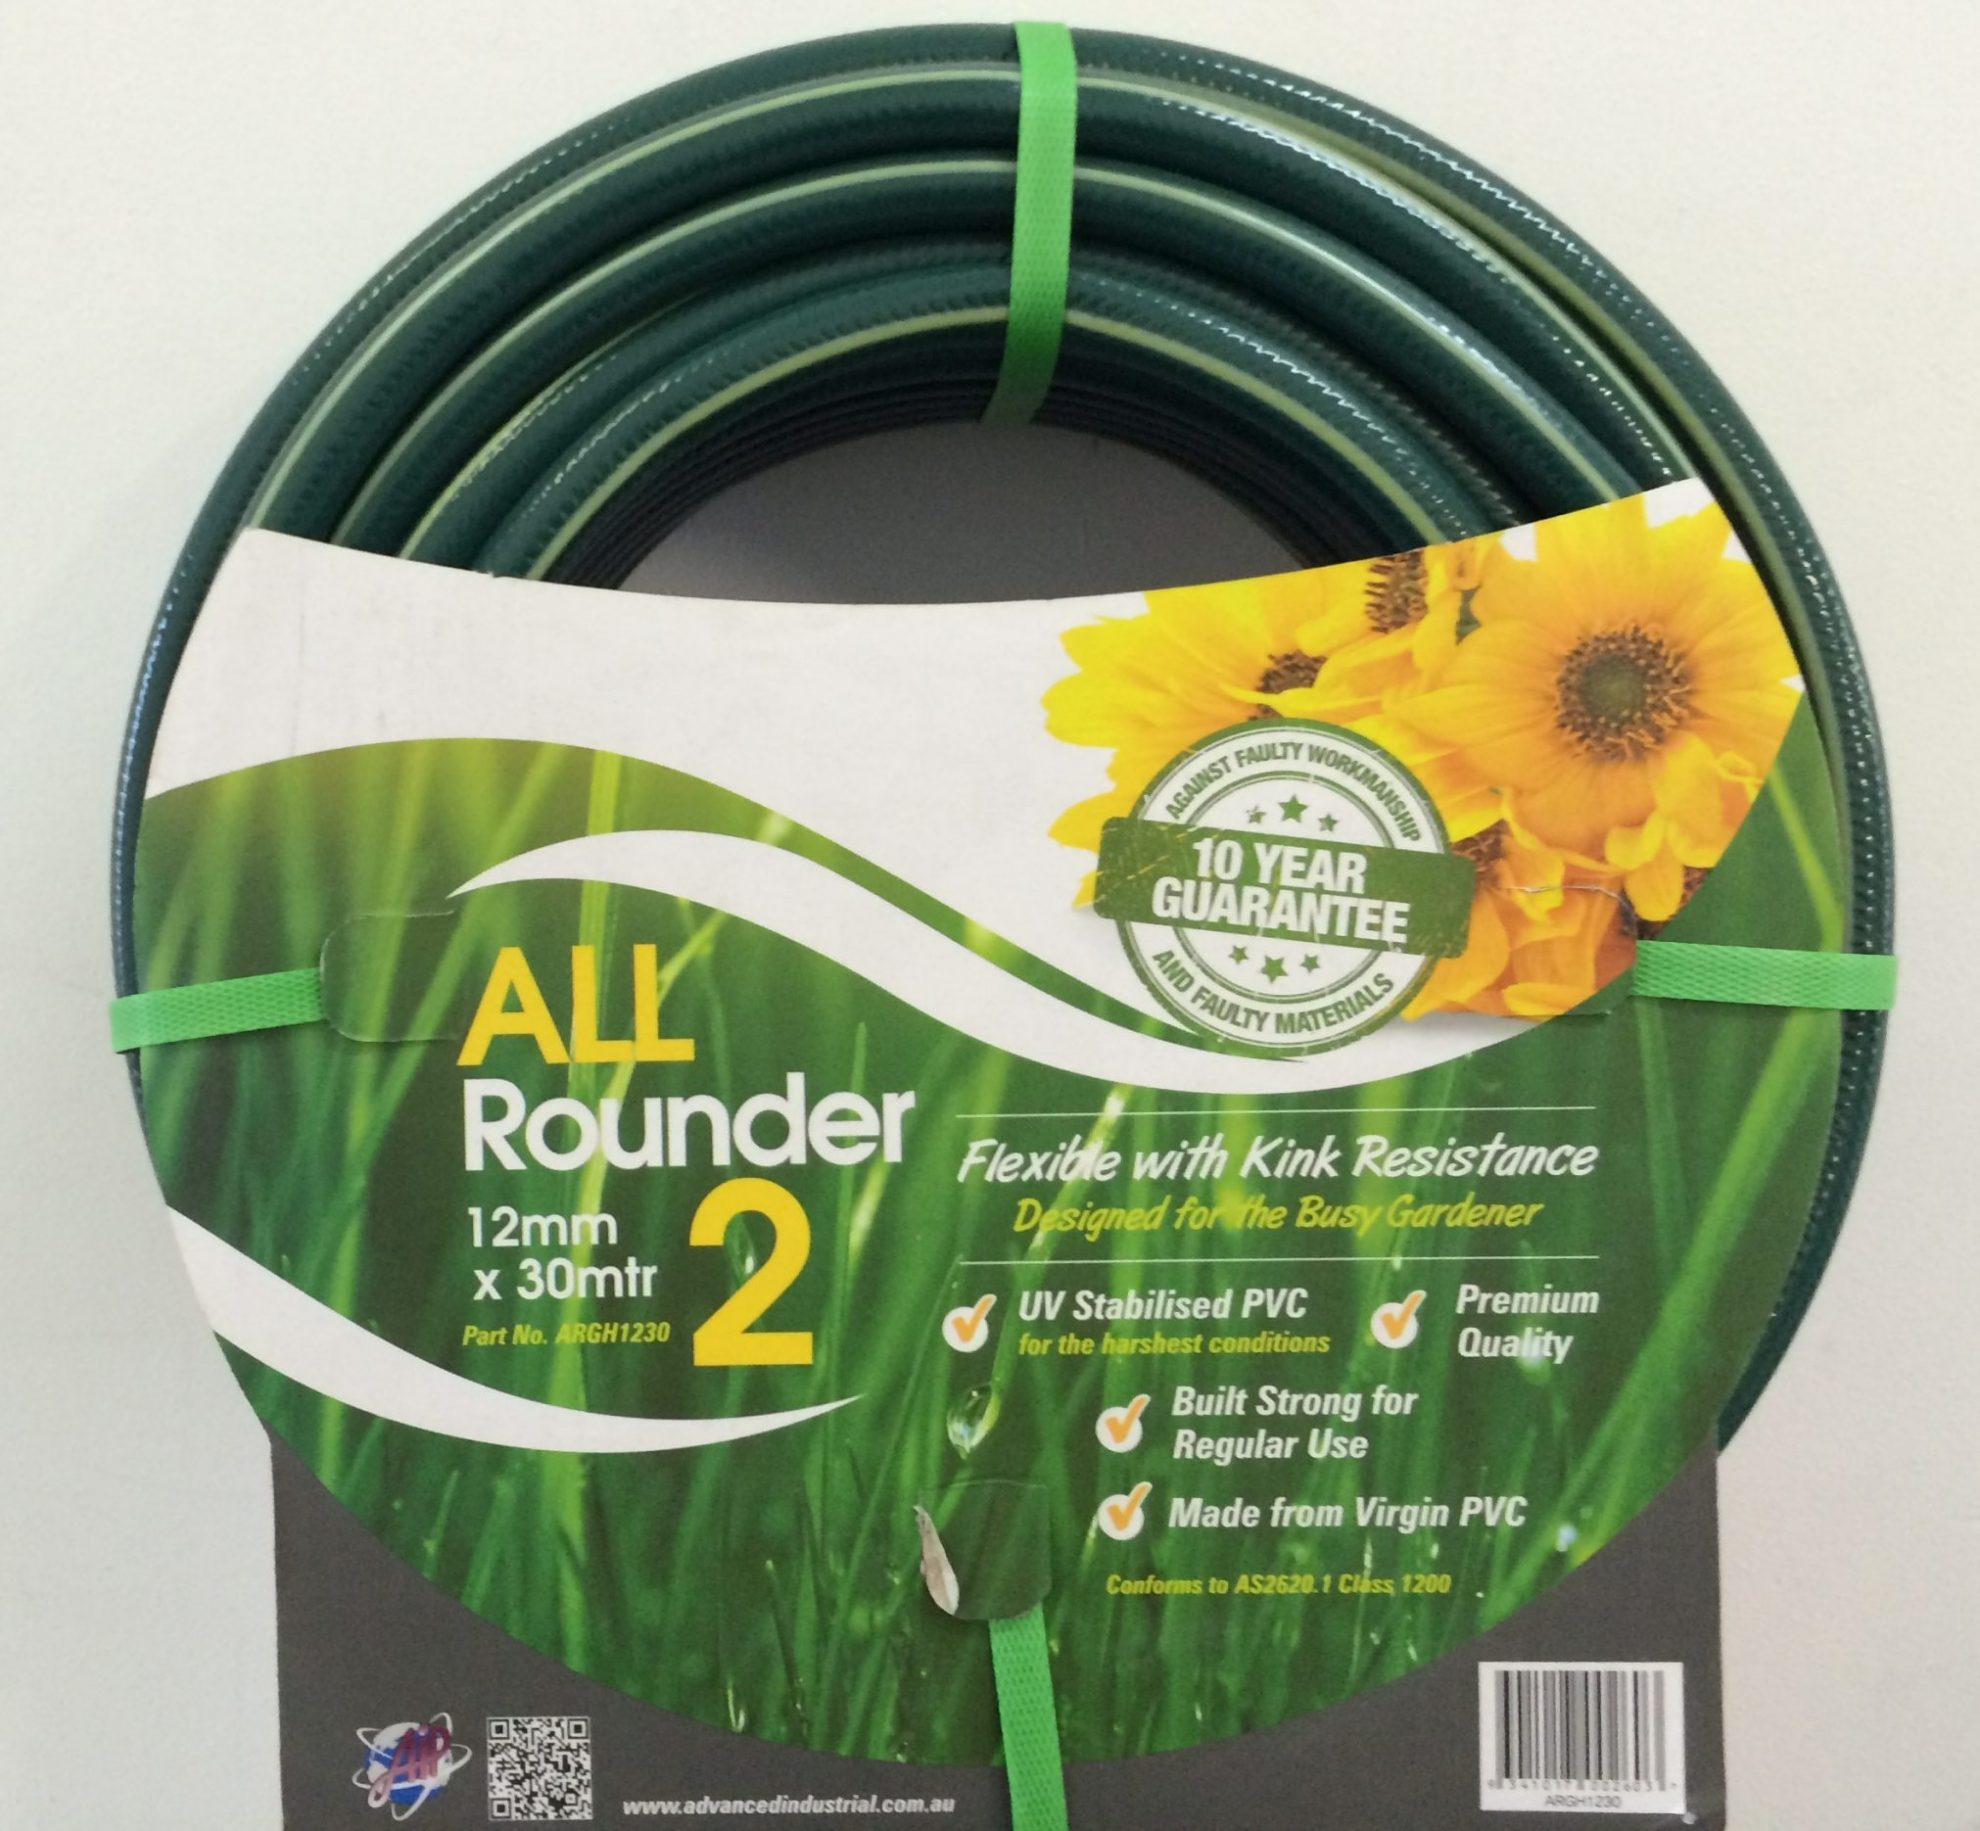 12MM X 30M ALL ROUNDER GARDEN HOSE